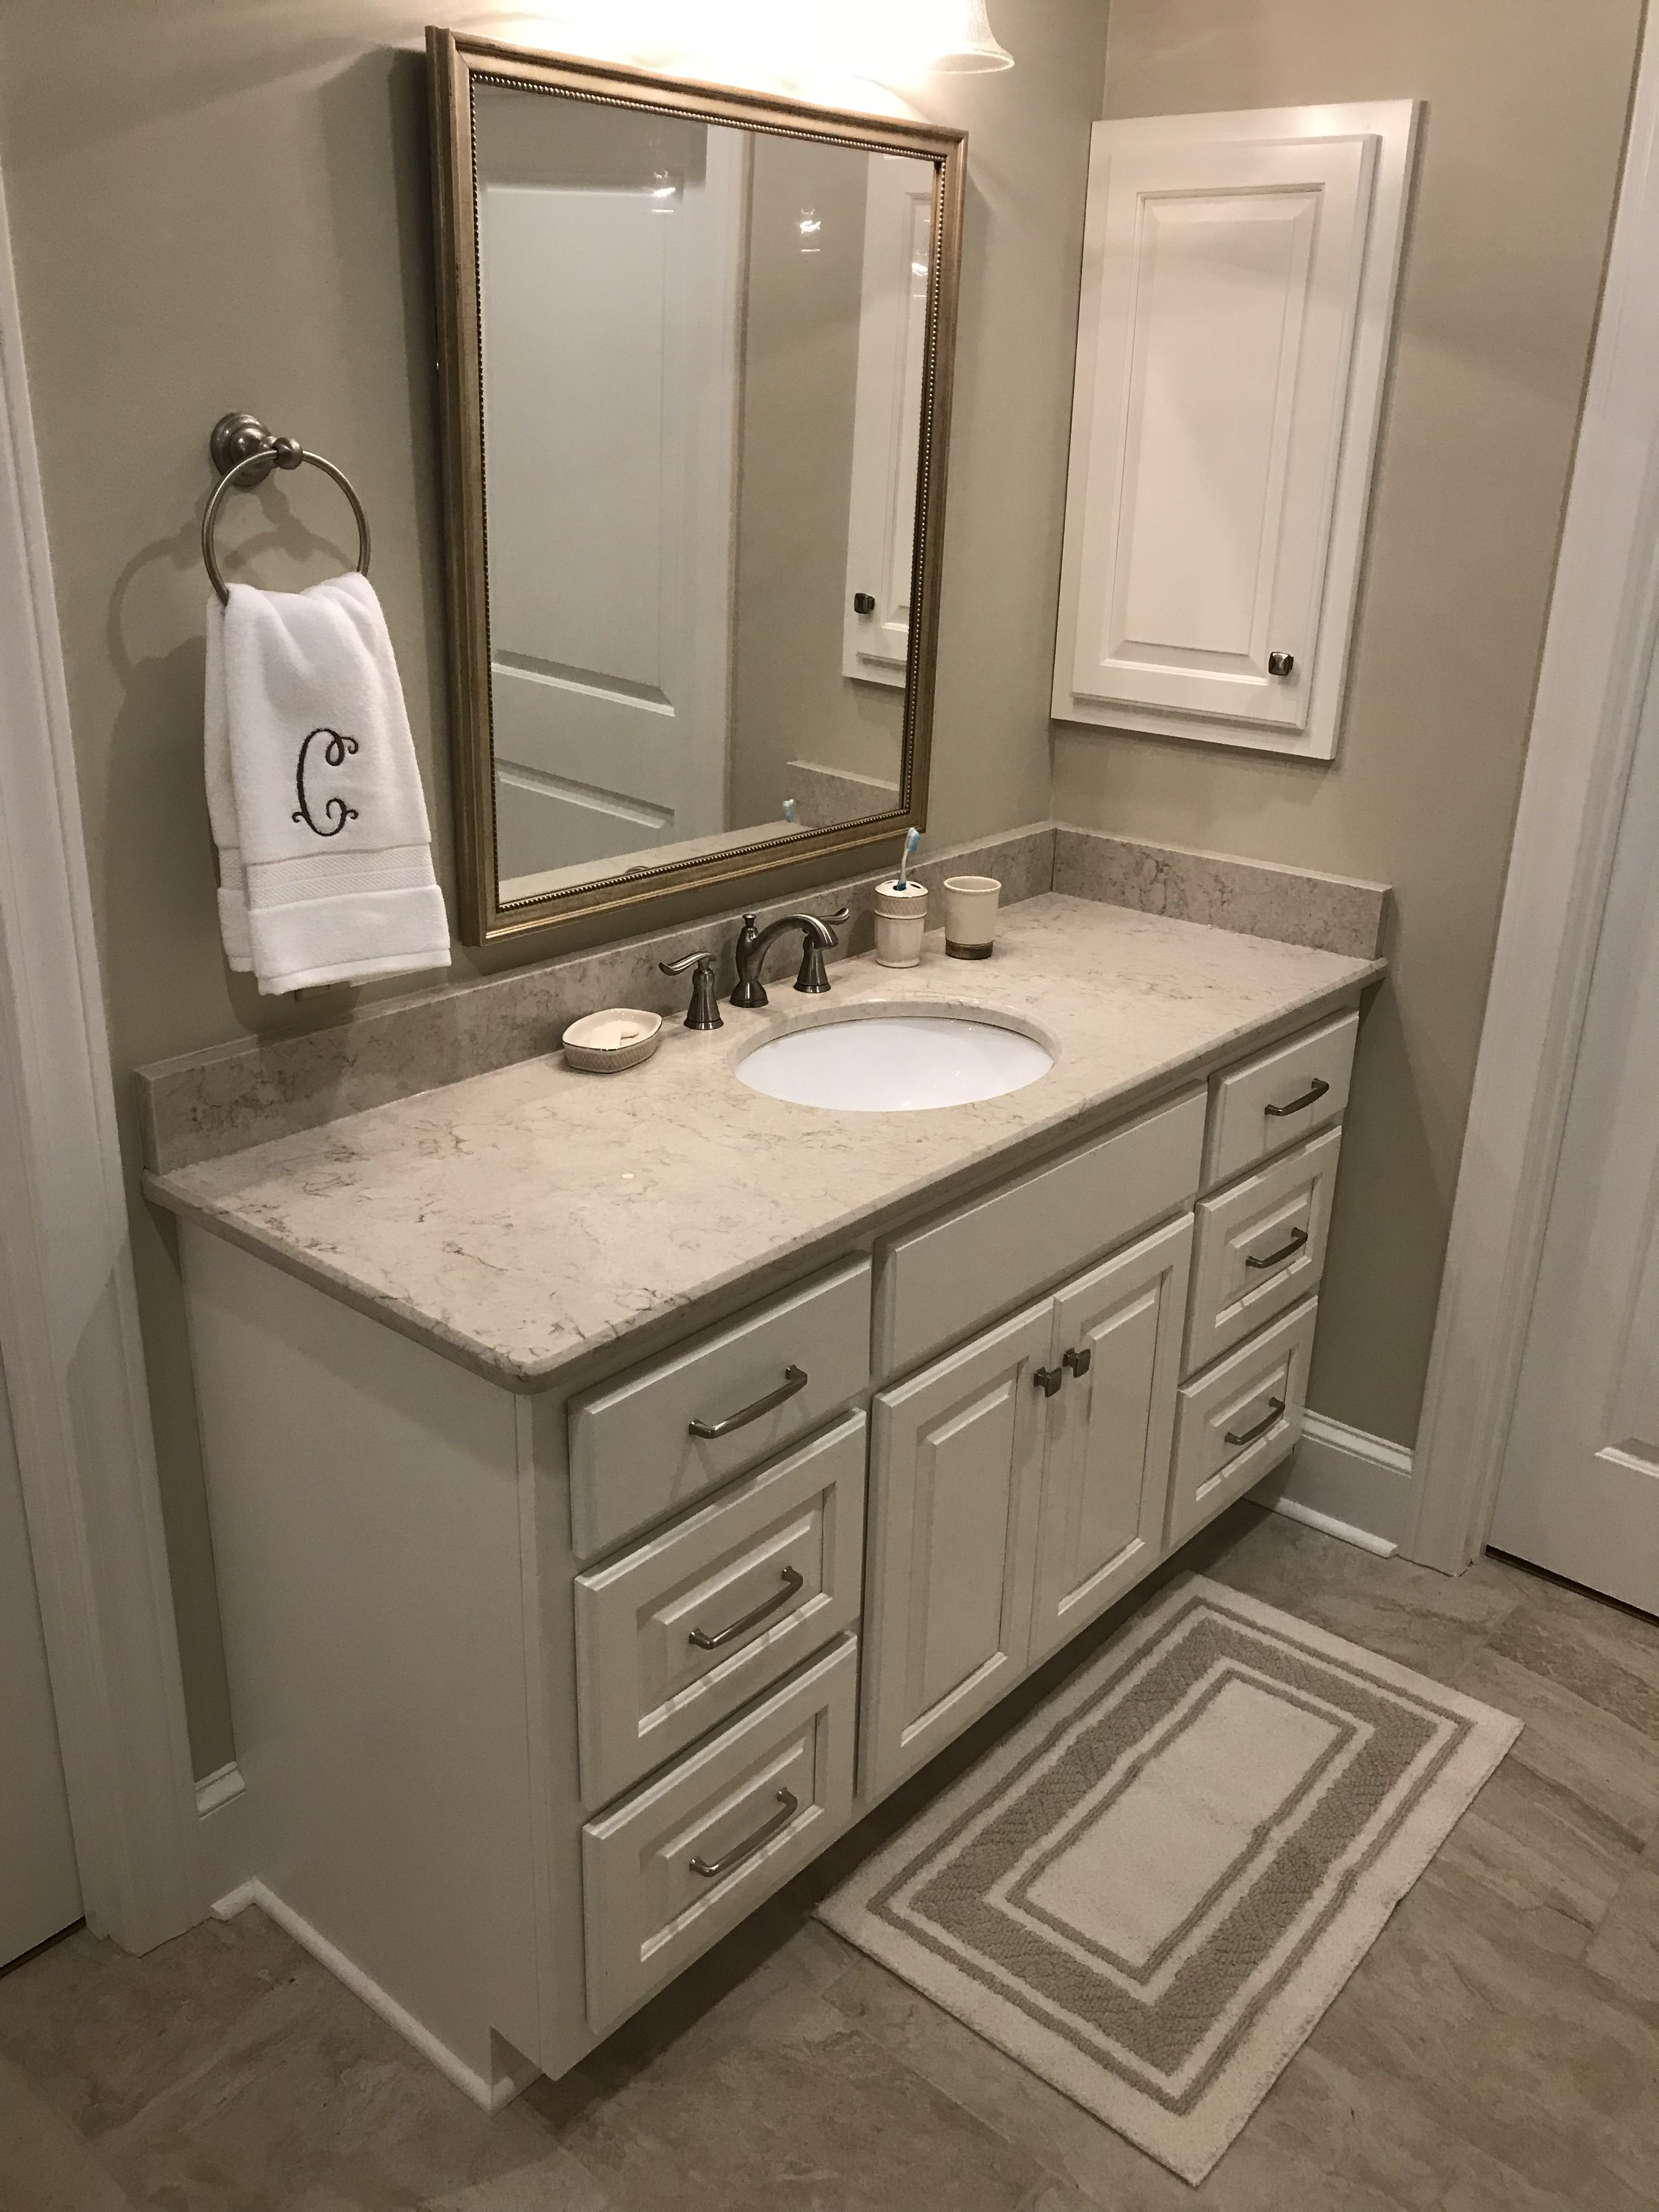 Cabinet & Countertop Store - Booneville Ms - Mccarley Cabinets